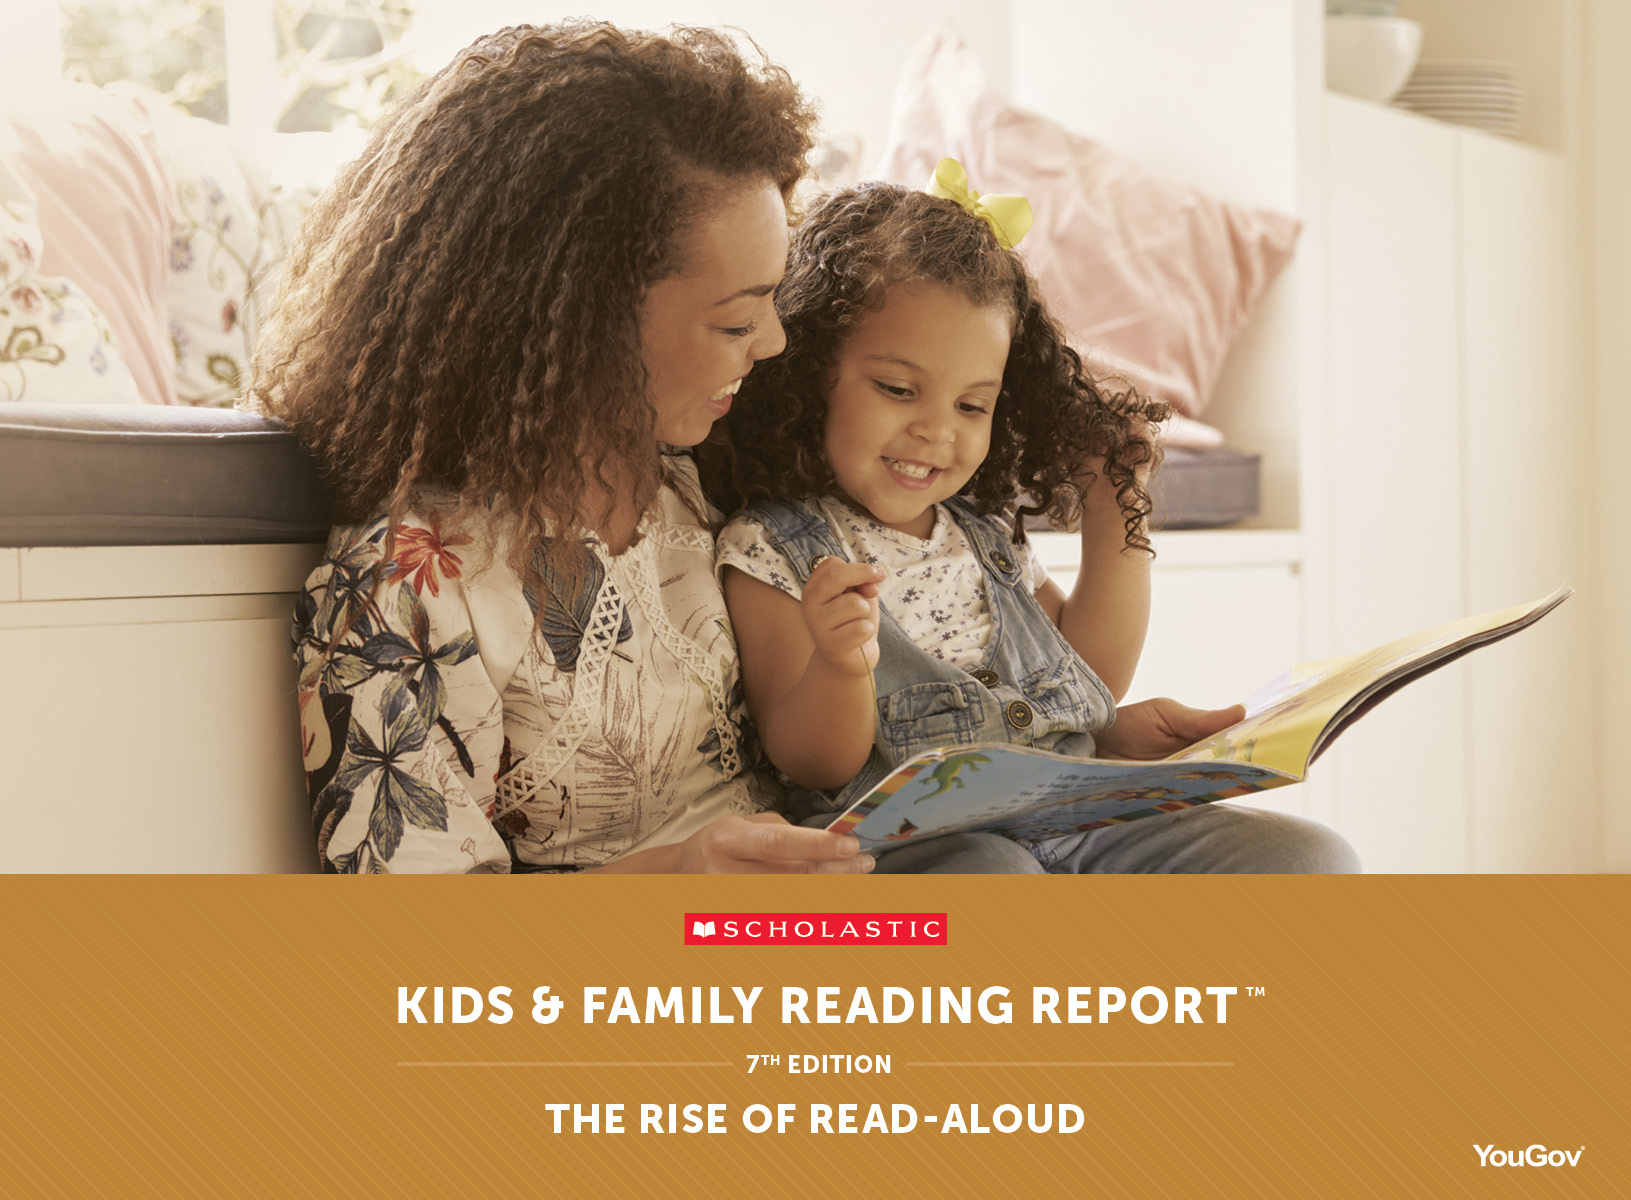 New Research from Scholastic on Reading Aloud